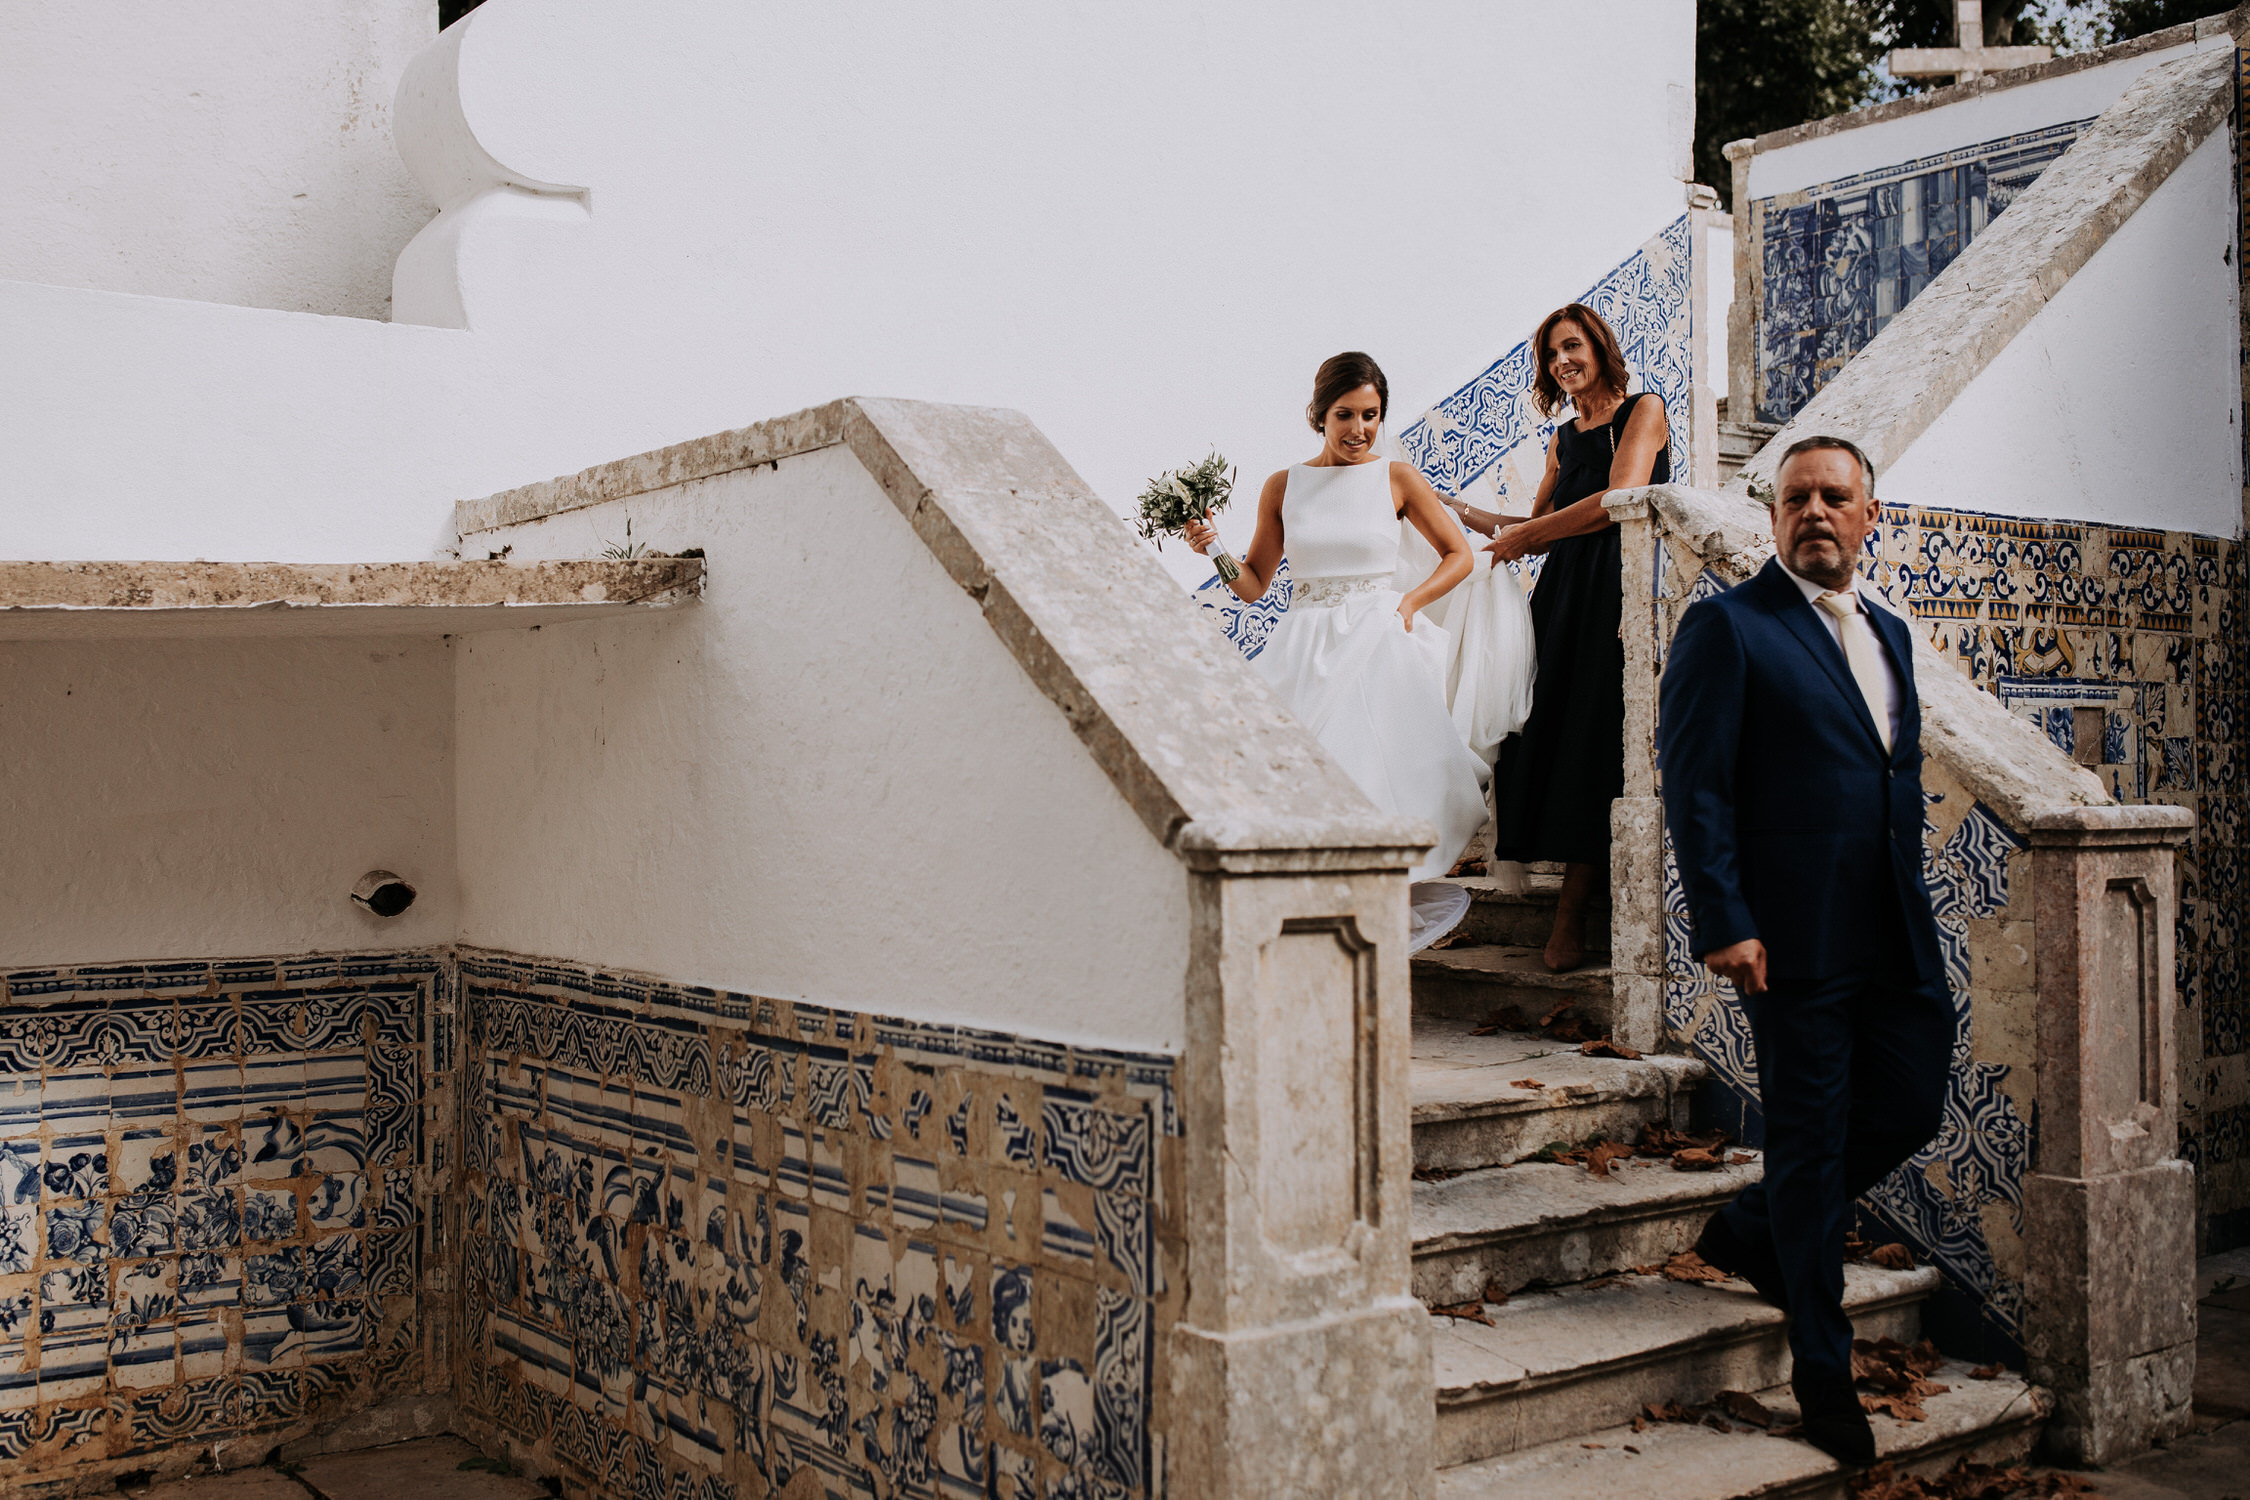 045 Filipe Santiago Fotografia Casamento wedding photographer near venue Lisbon Malveira Ericeira best Sintra Portugal destination